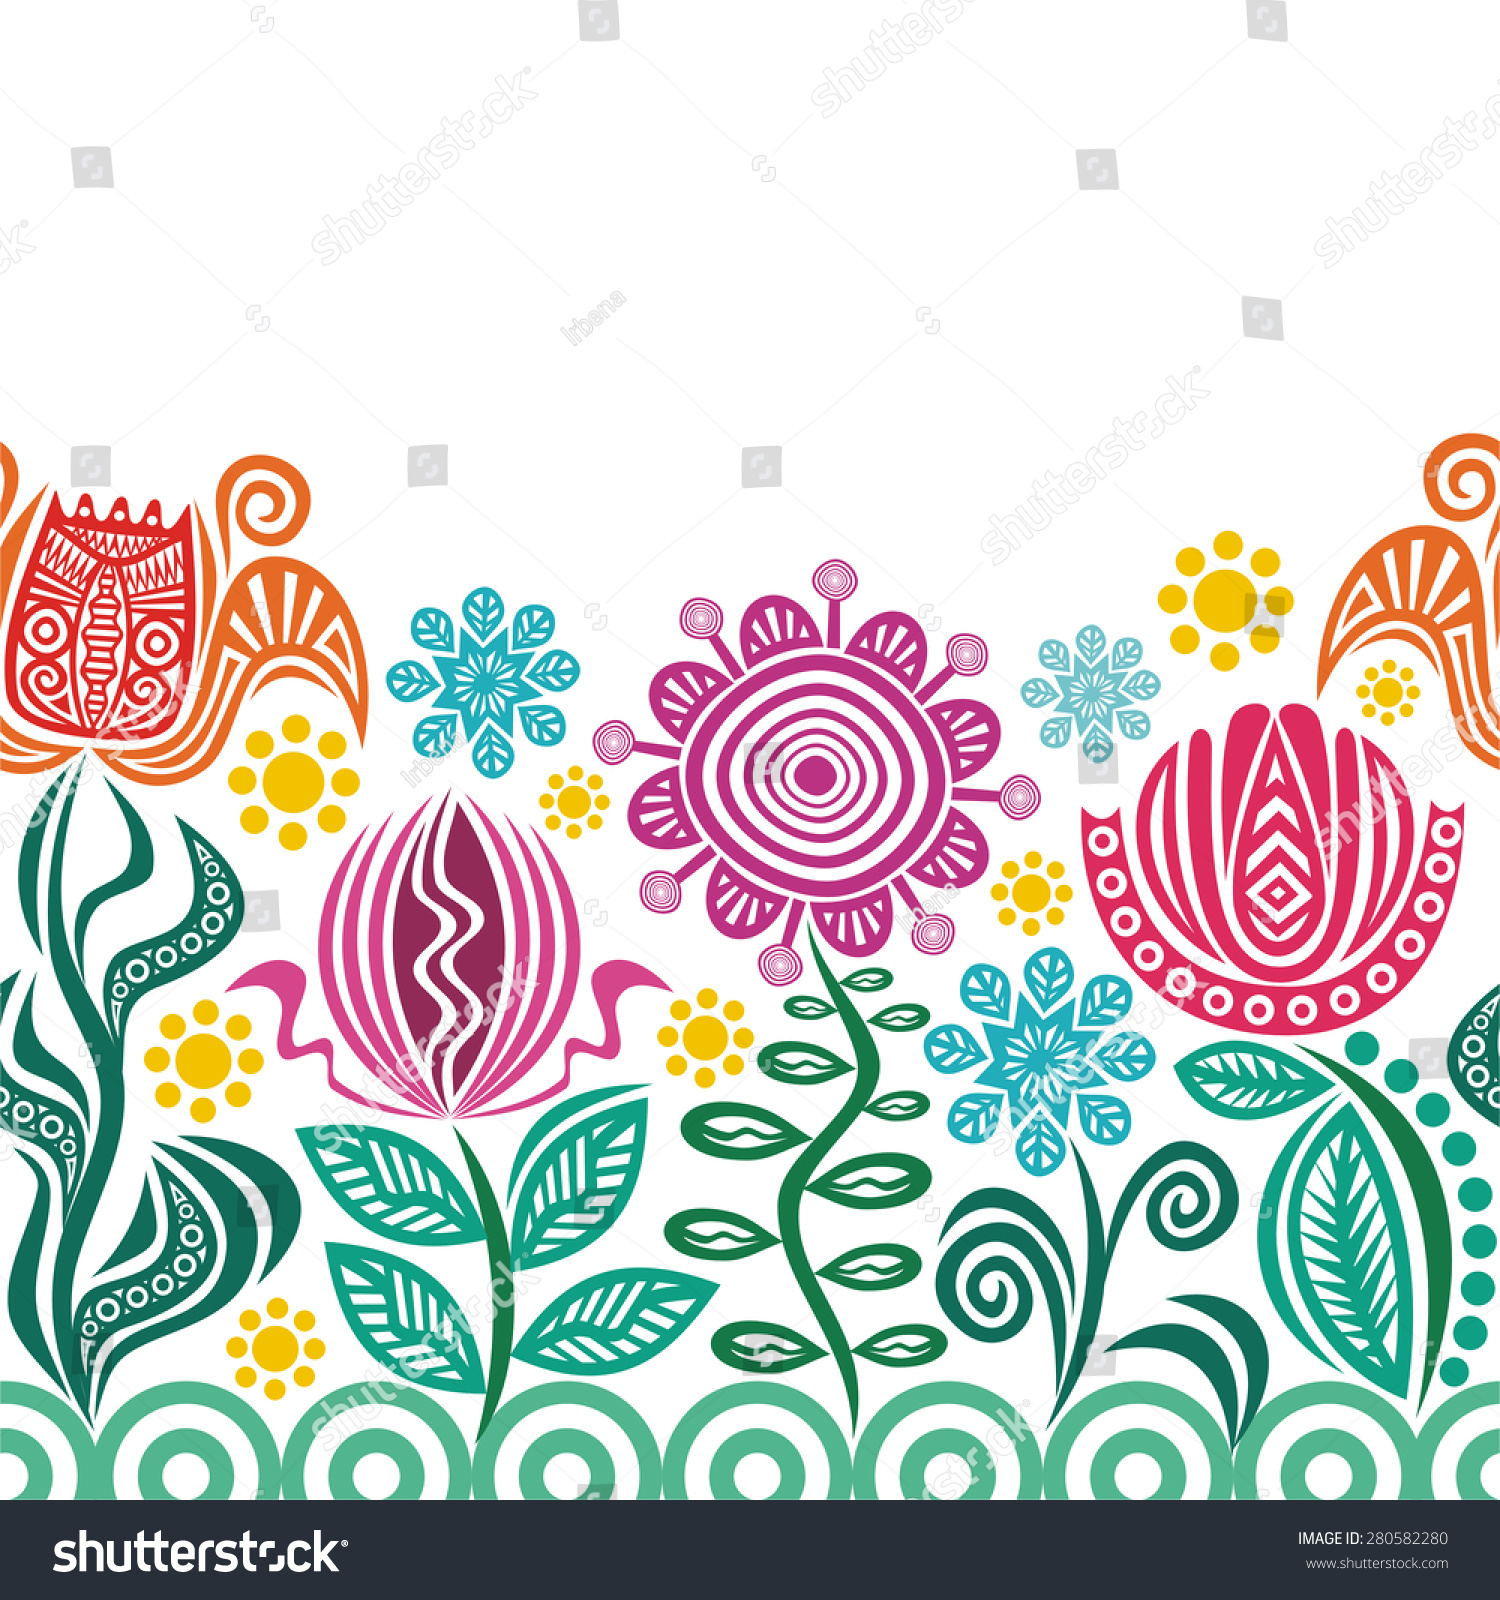 Floral nature pattern seamless border vector illustration